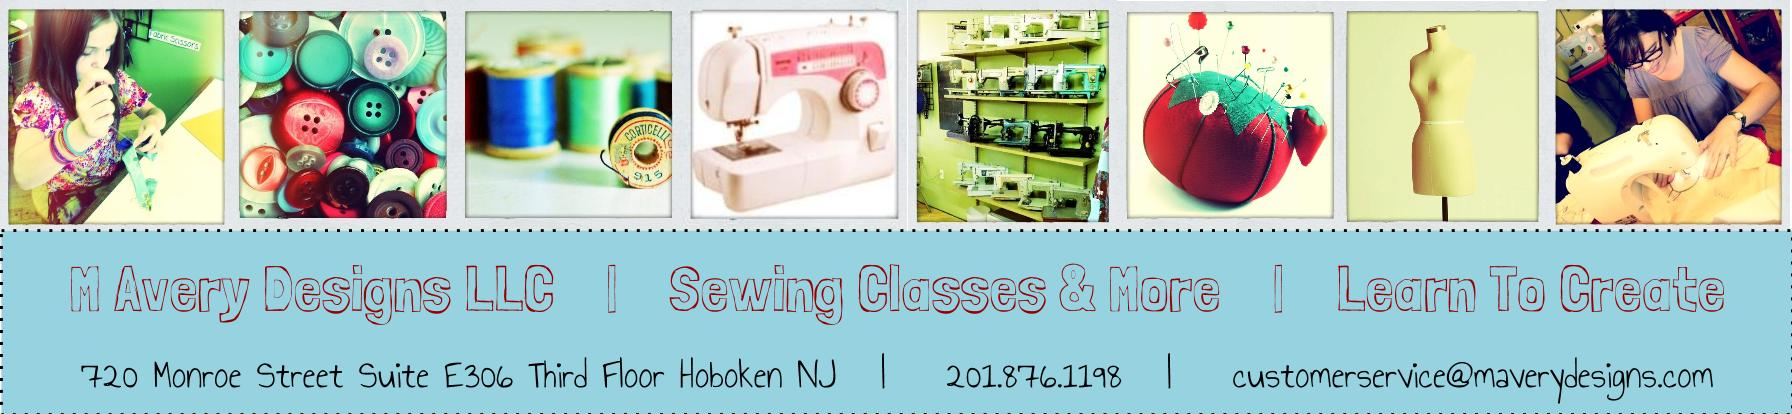 M Avery Designs LLC | Sewing & Crafting Classes for Kids & Adults